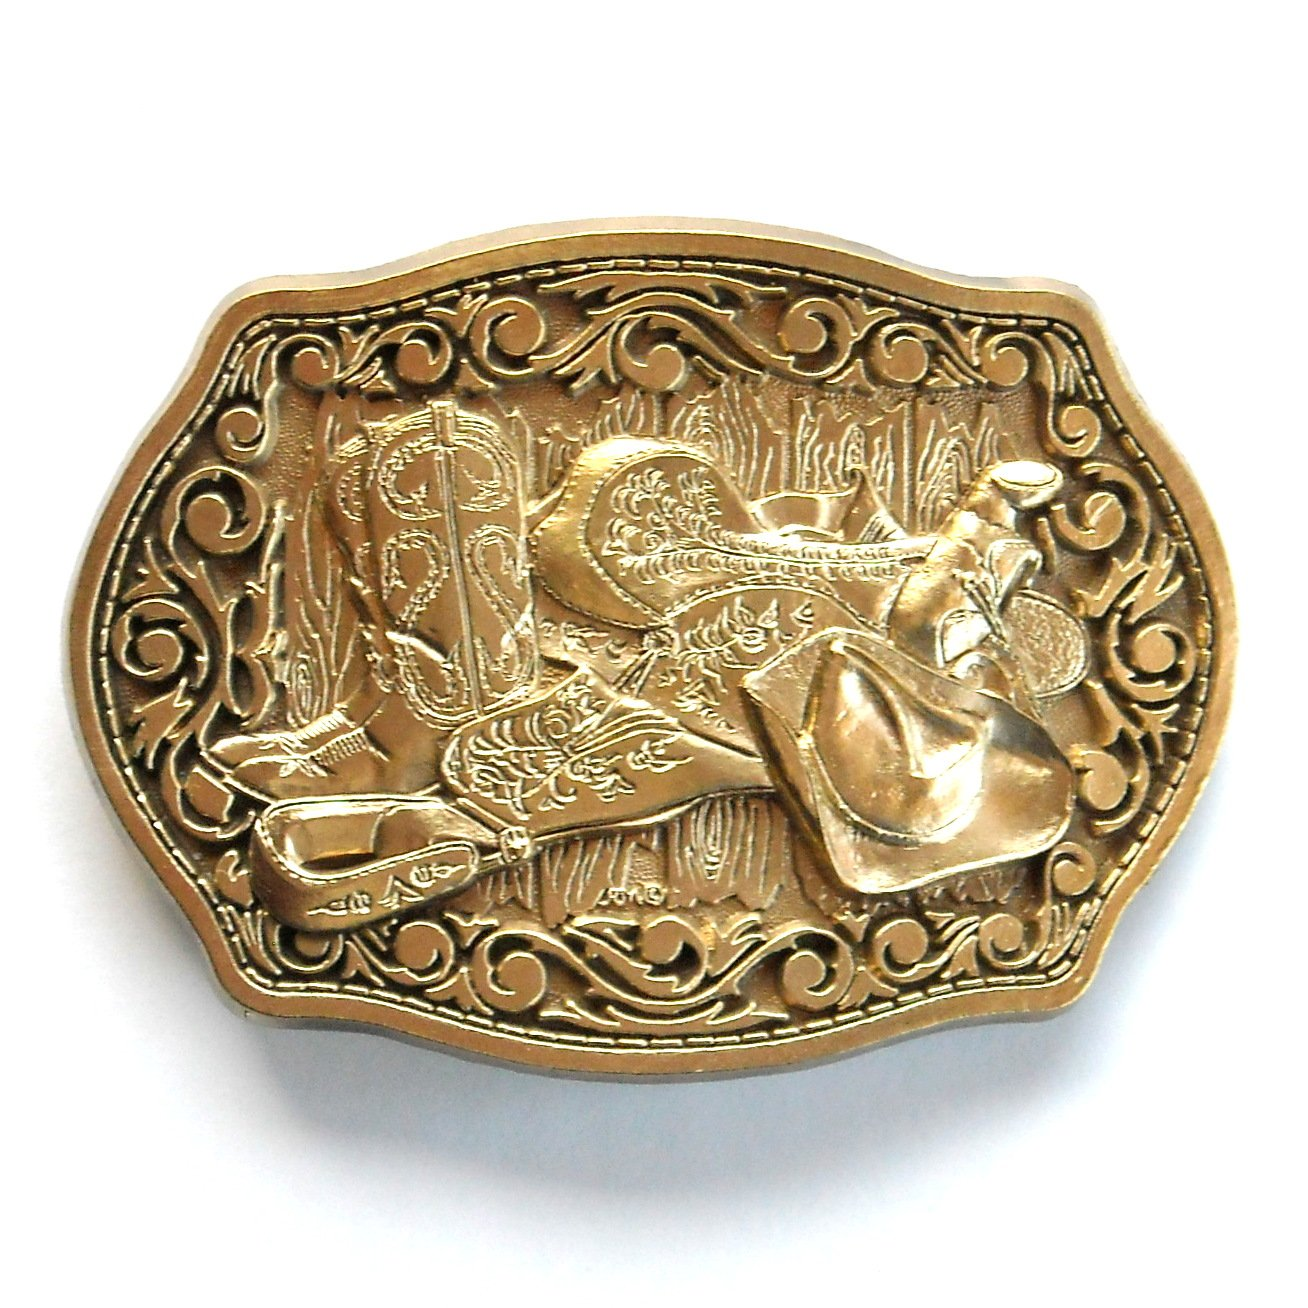 Cowboy Boots Hat Saddle ADM Solid Brass Belt Buckle